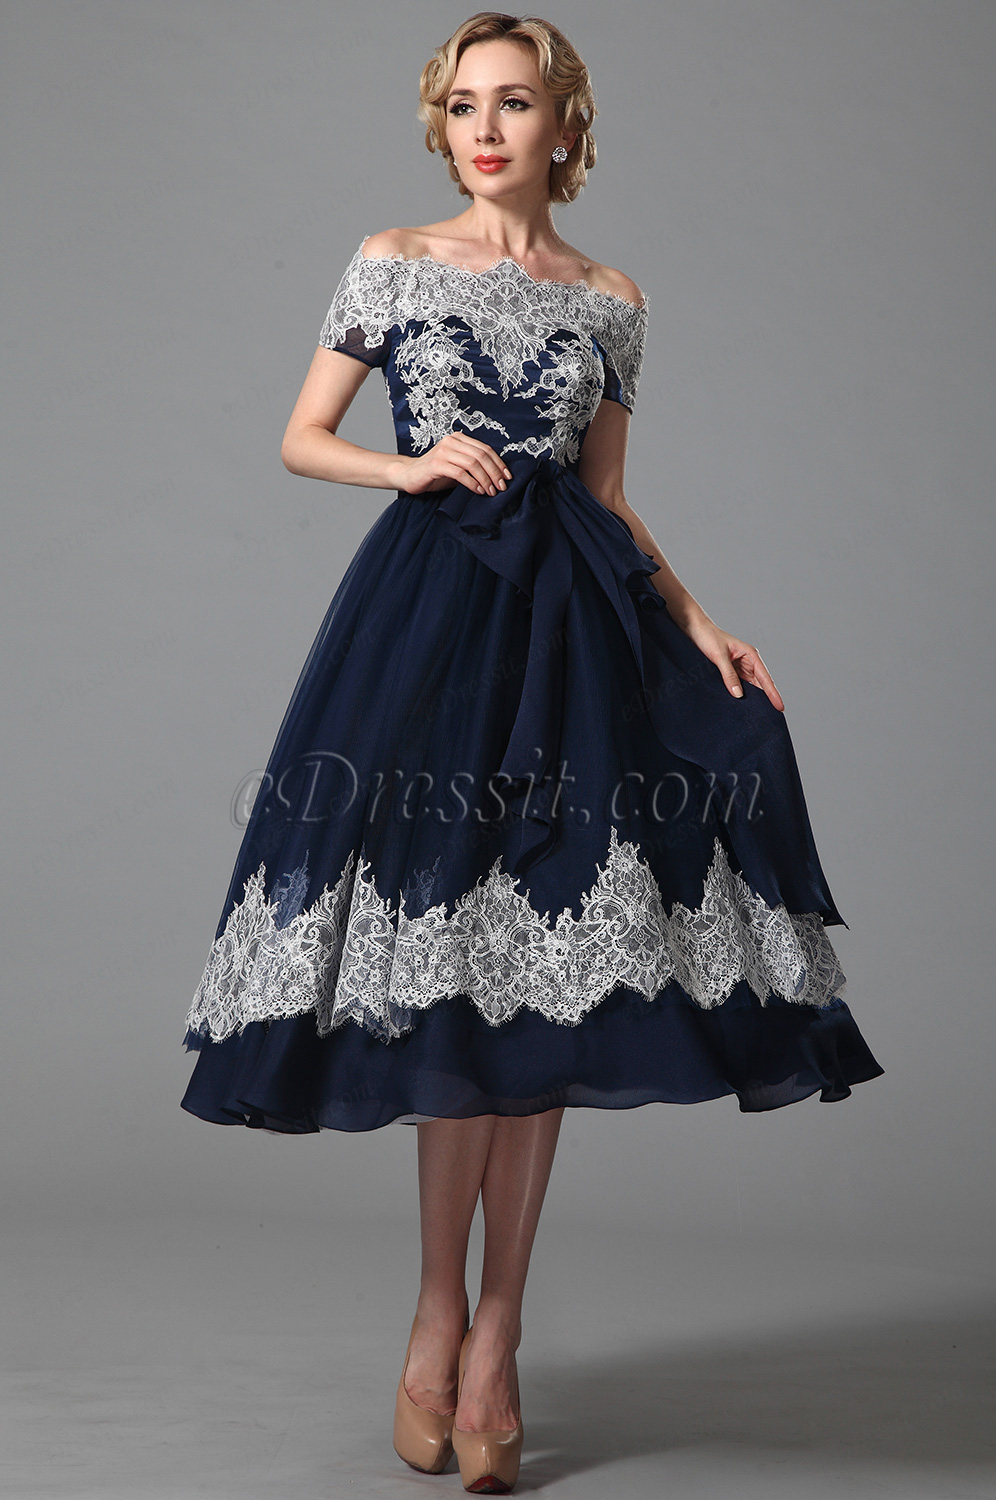 Cheap graduation dresses fashion collection wear it for your graduation or homecoming complete your look with some matching accessories edressit vintage off shoulder navy blue cocktail dress ombrellifo Image collections